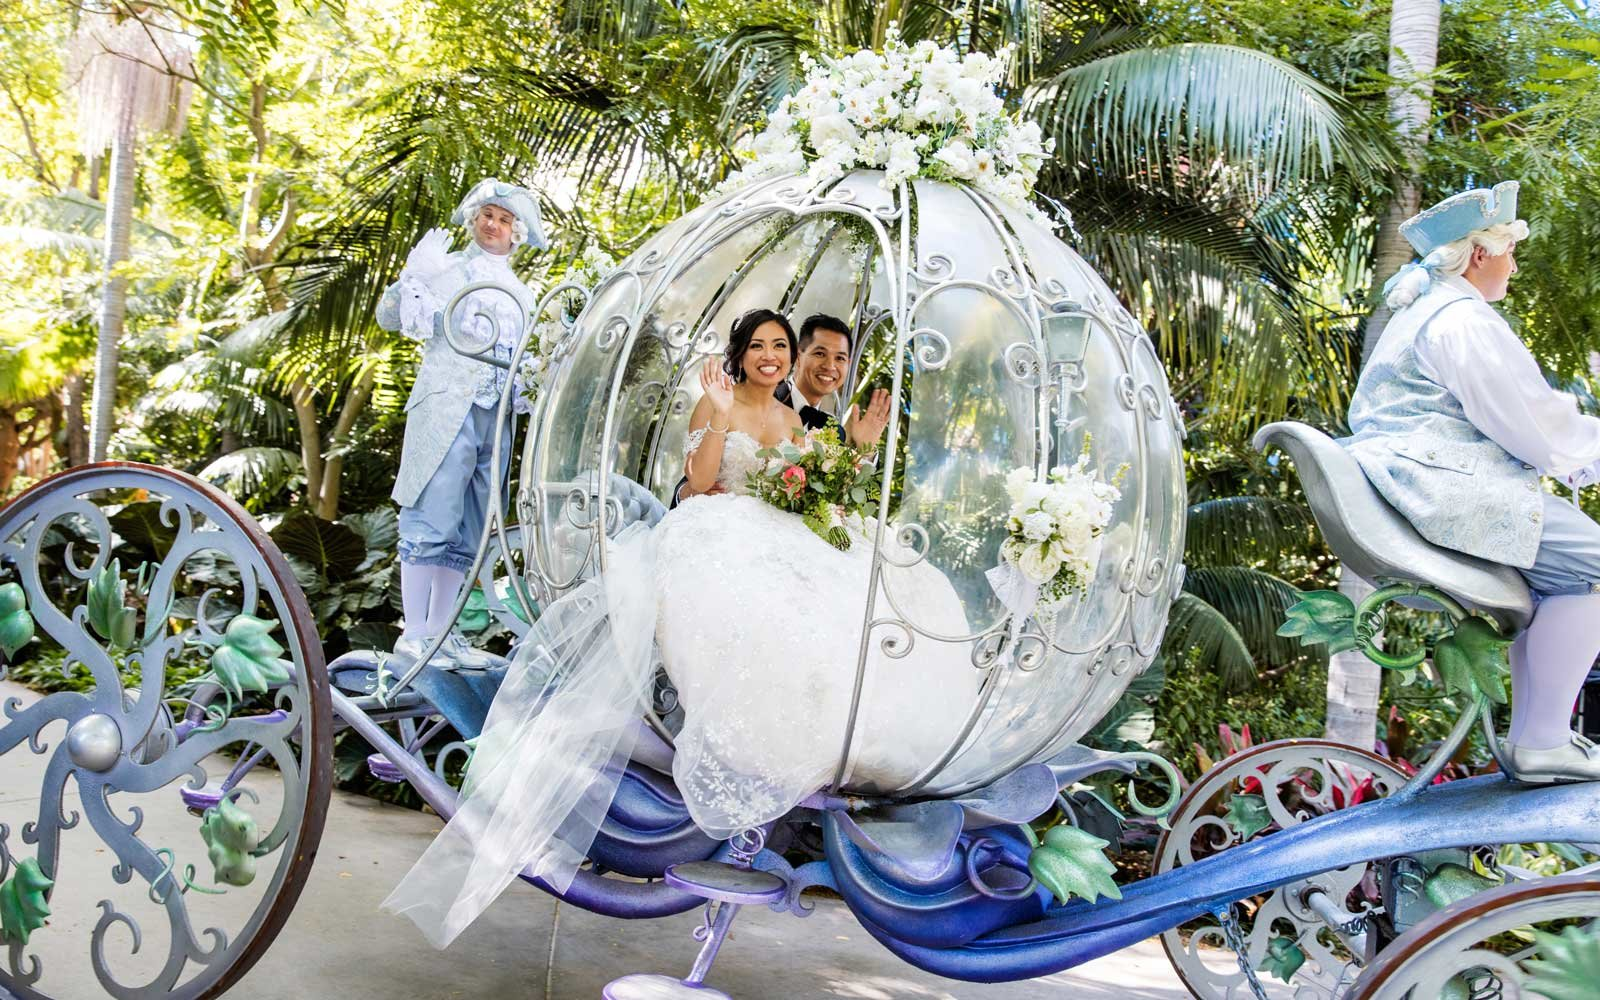 disney-cinderella-wedding-carriage-DISWED0917.jpg